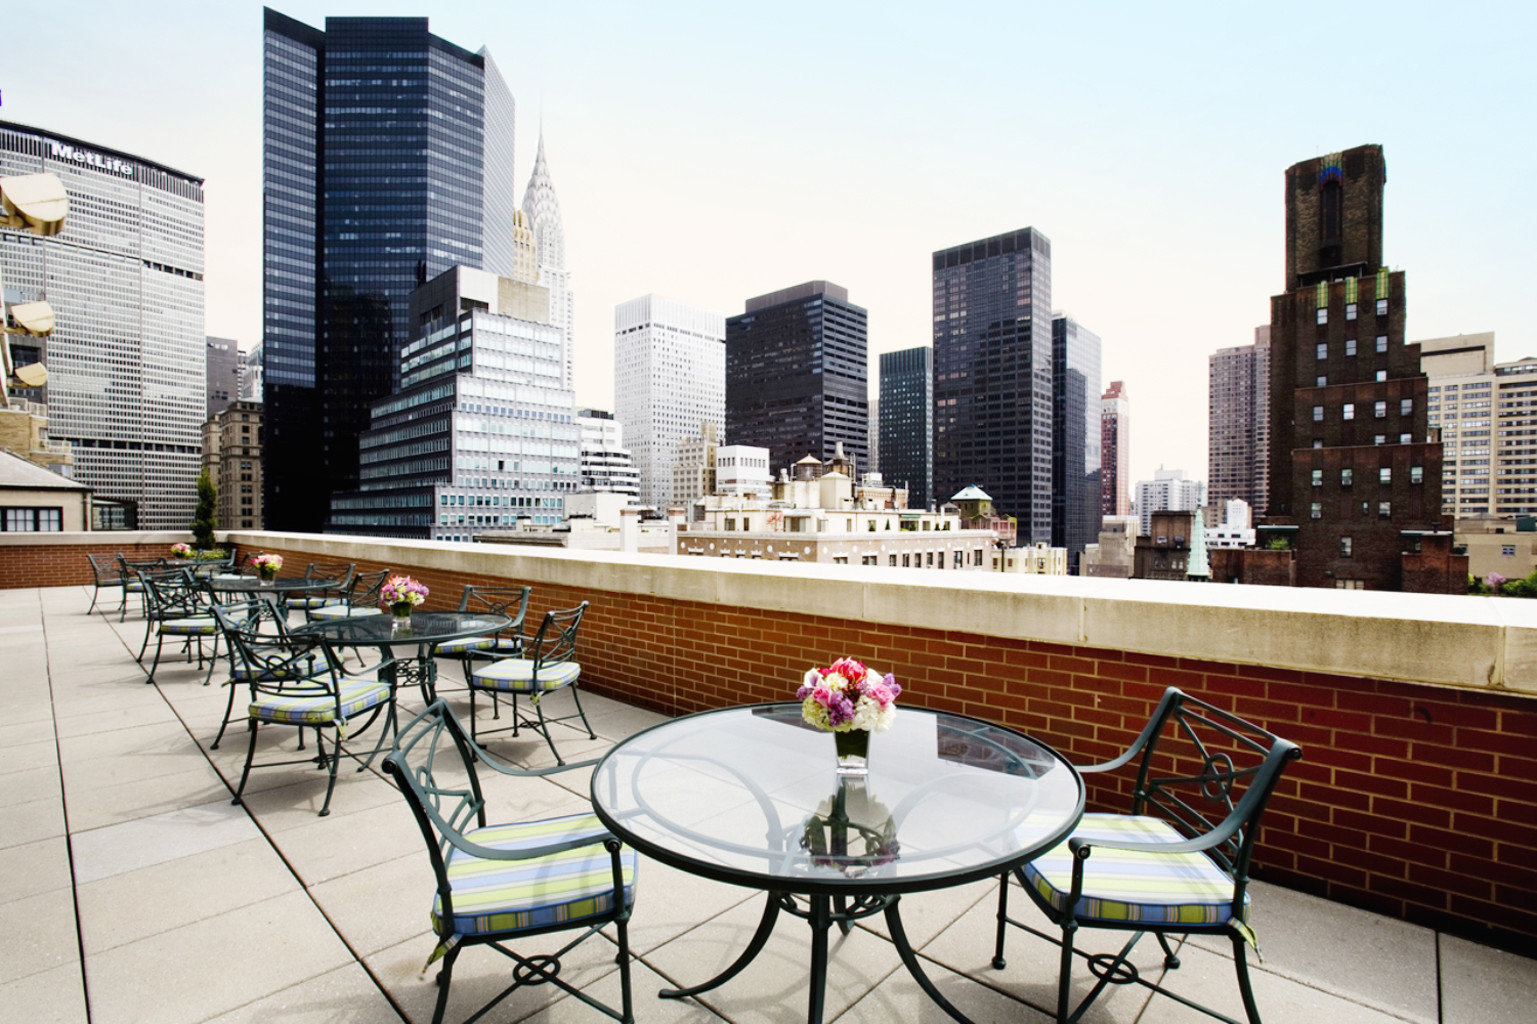 Architecture Balcony Buildings City Dining Drink Eat Scenic views condominium plaza skyline Downtown